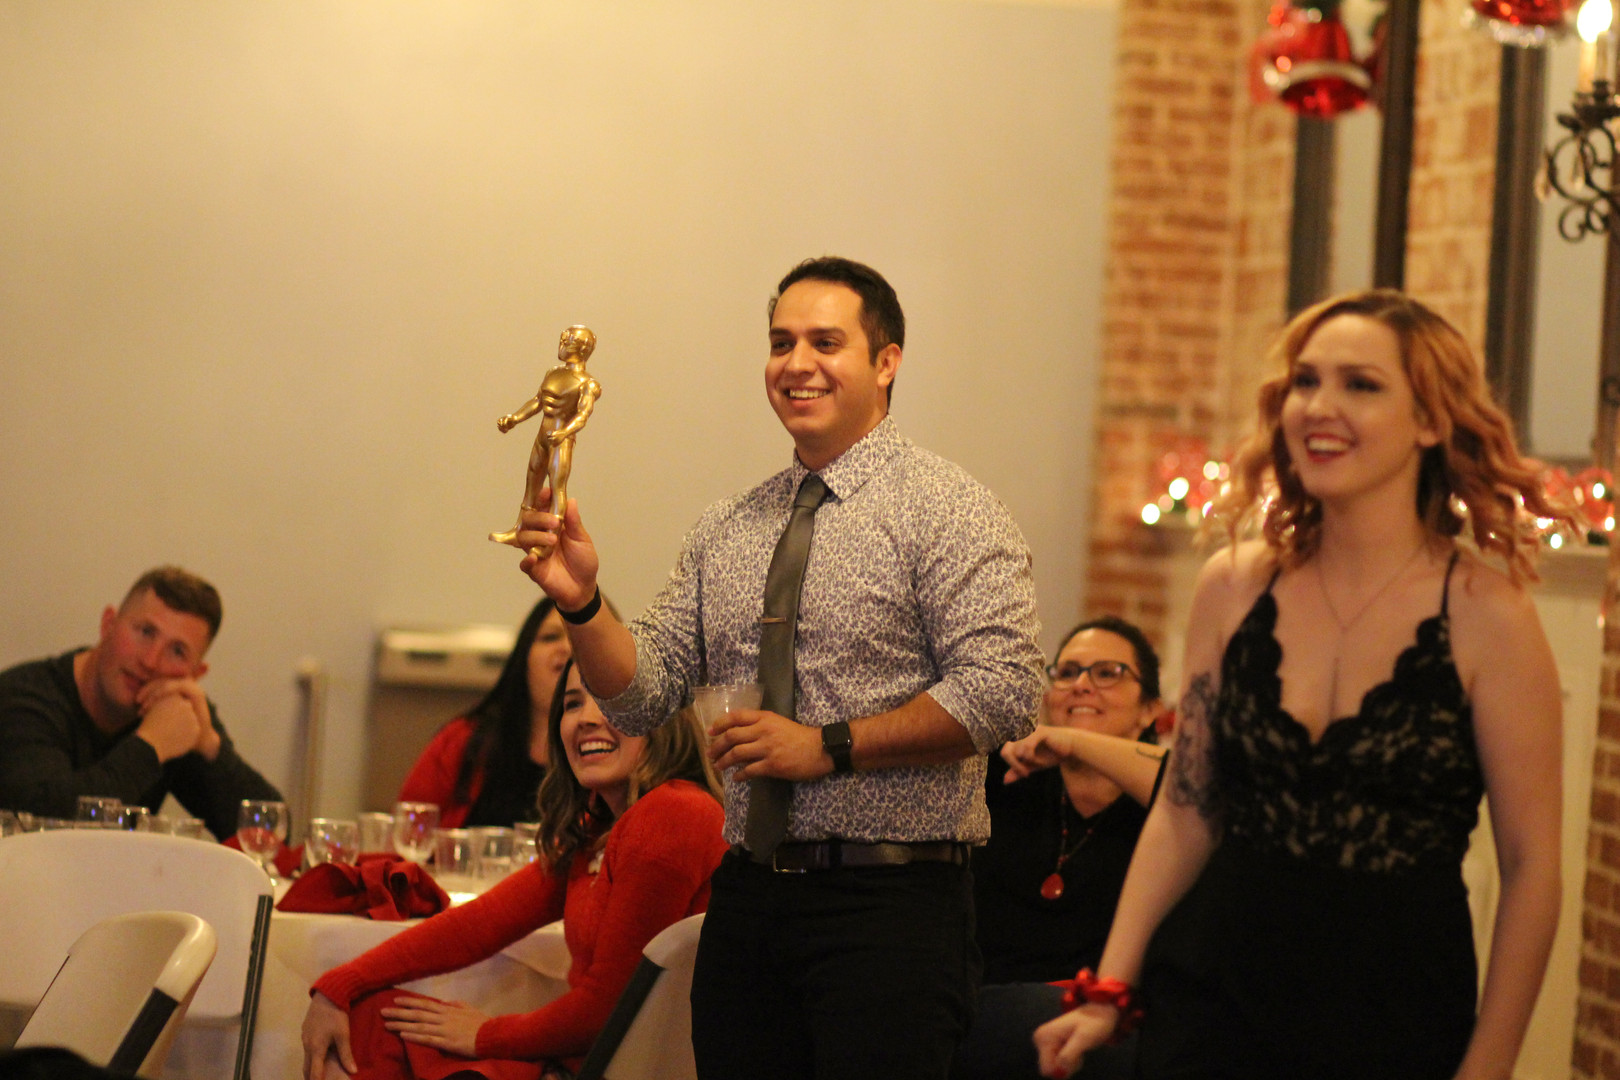 Giving out the Stormwater Superhero Award at our Holiday Party